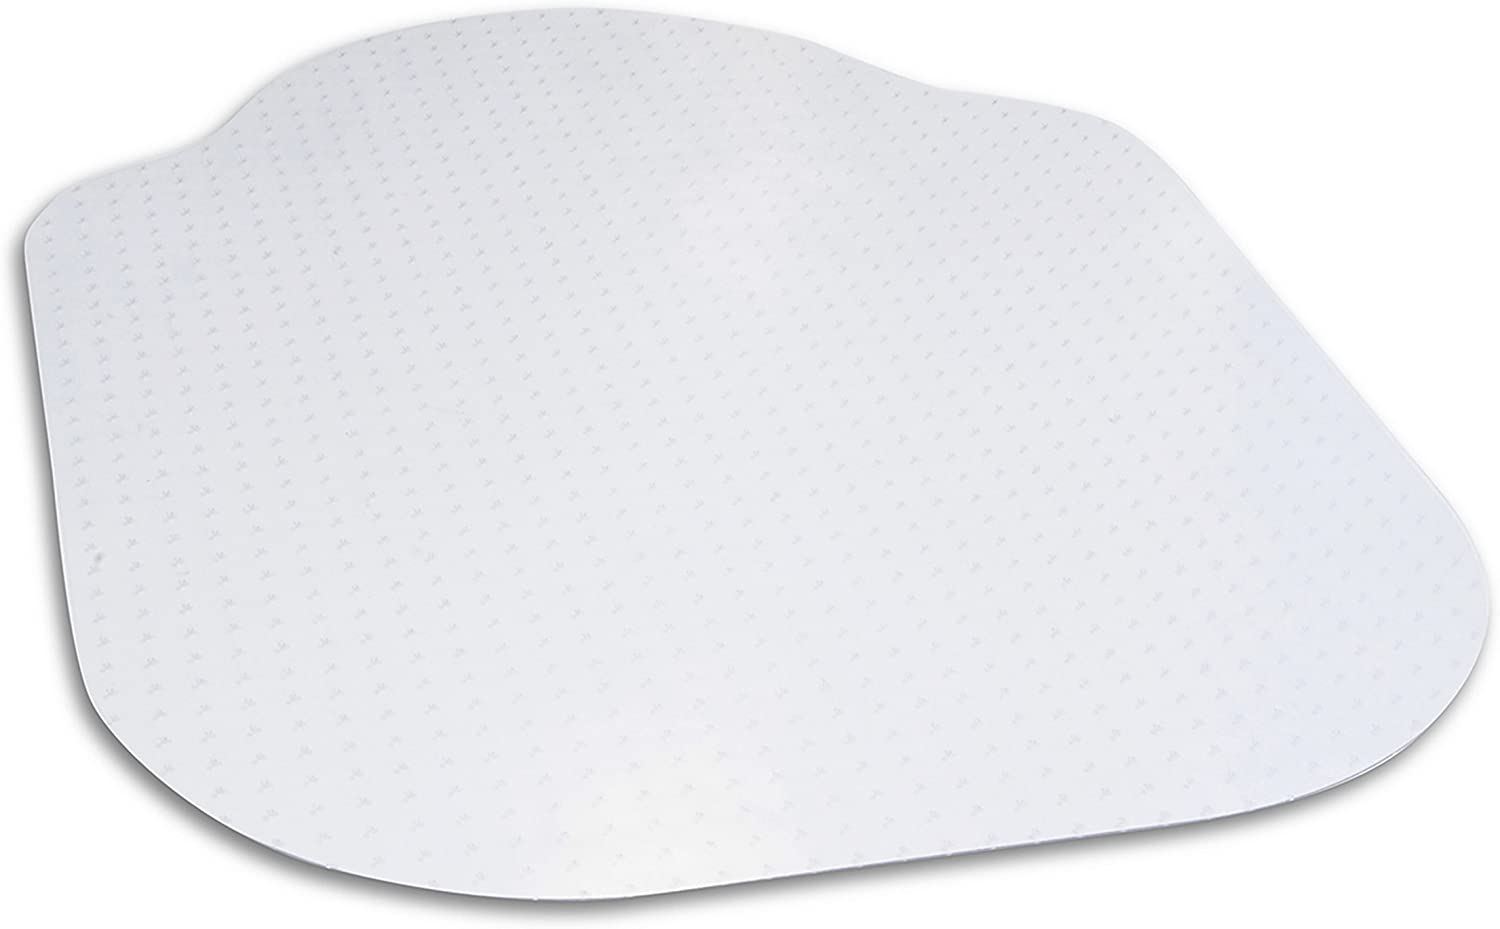 "Evolve Modern Shape 39"" x 52"" Clear Office Chair Mat with Lip for Low and Medium Pile Carpet, Made in The USA by Dimex, (C5C5003J)"